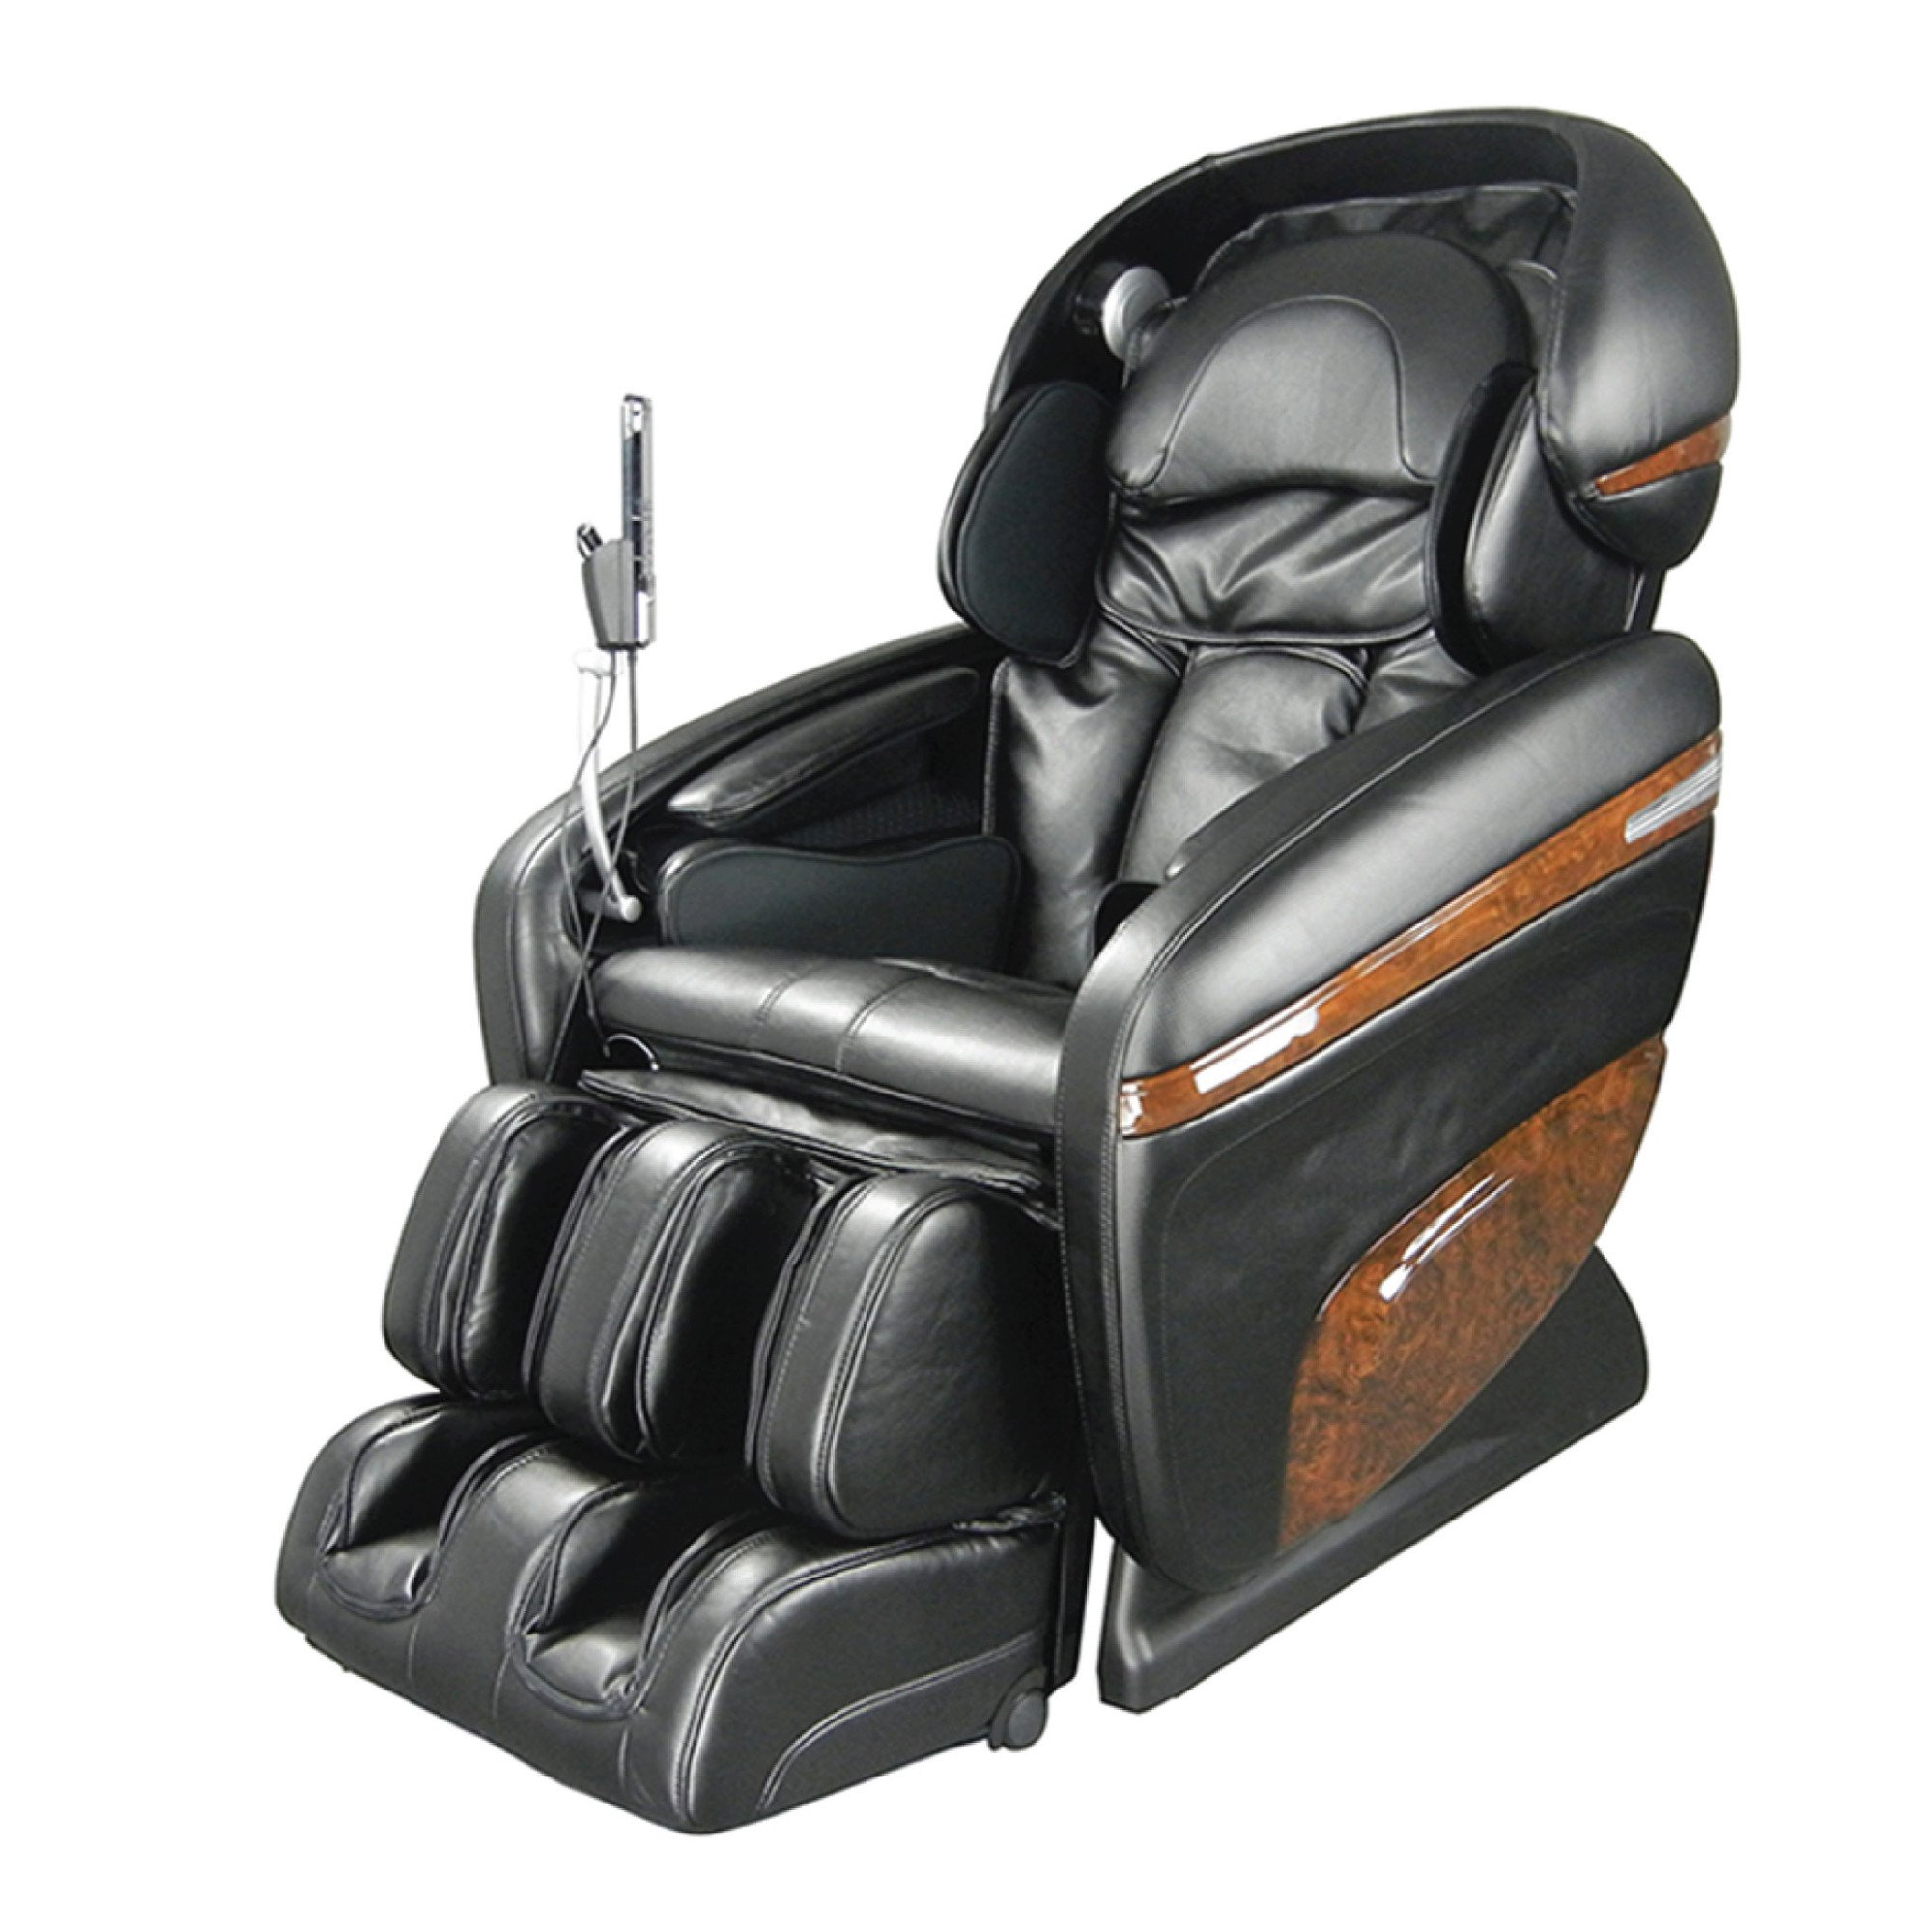 Osaki 3D Pro Dreamer Massage Chair - Black - Front Angle View